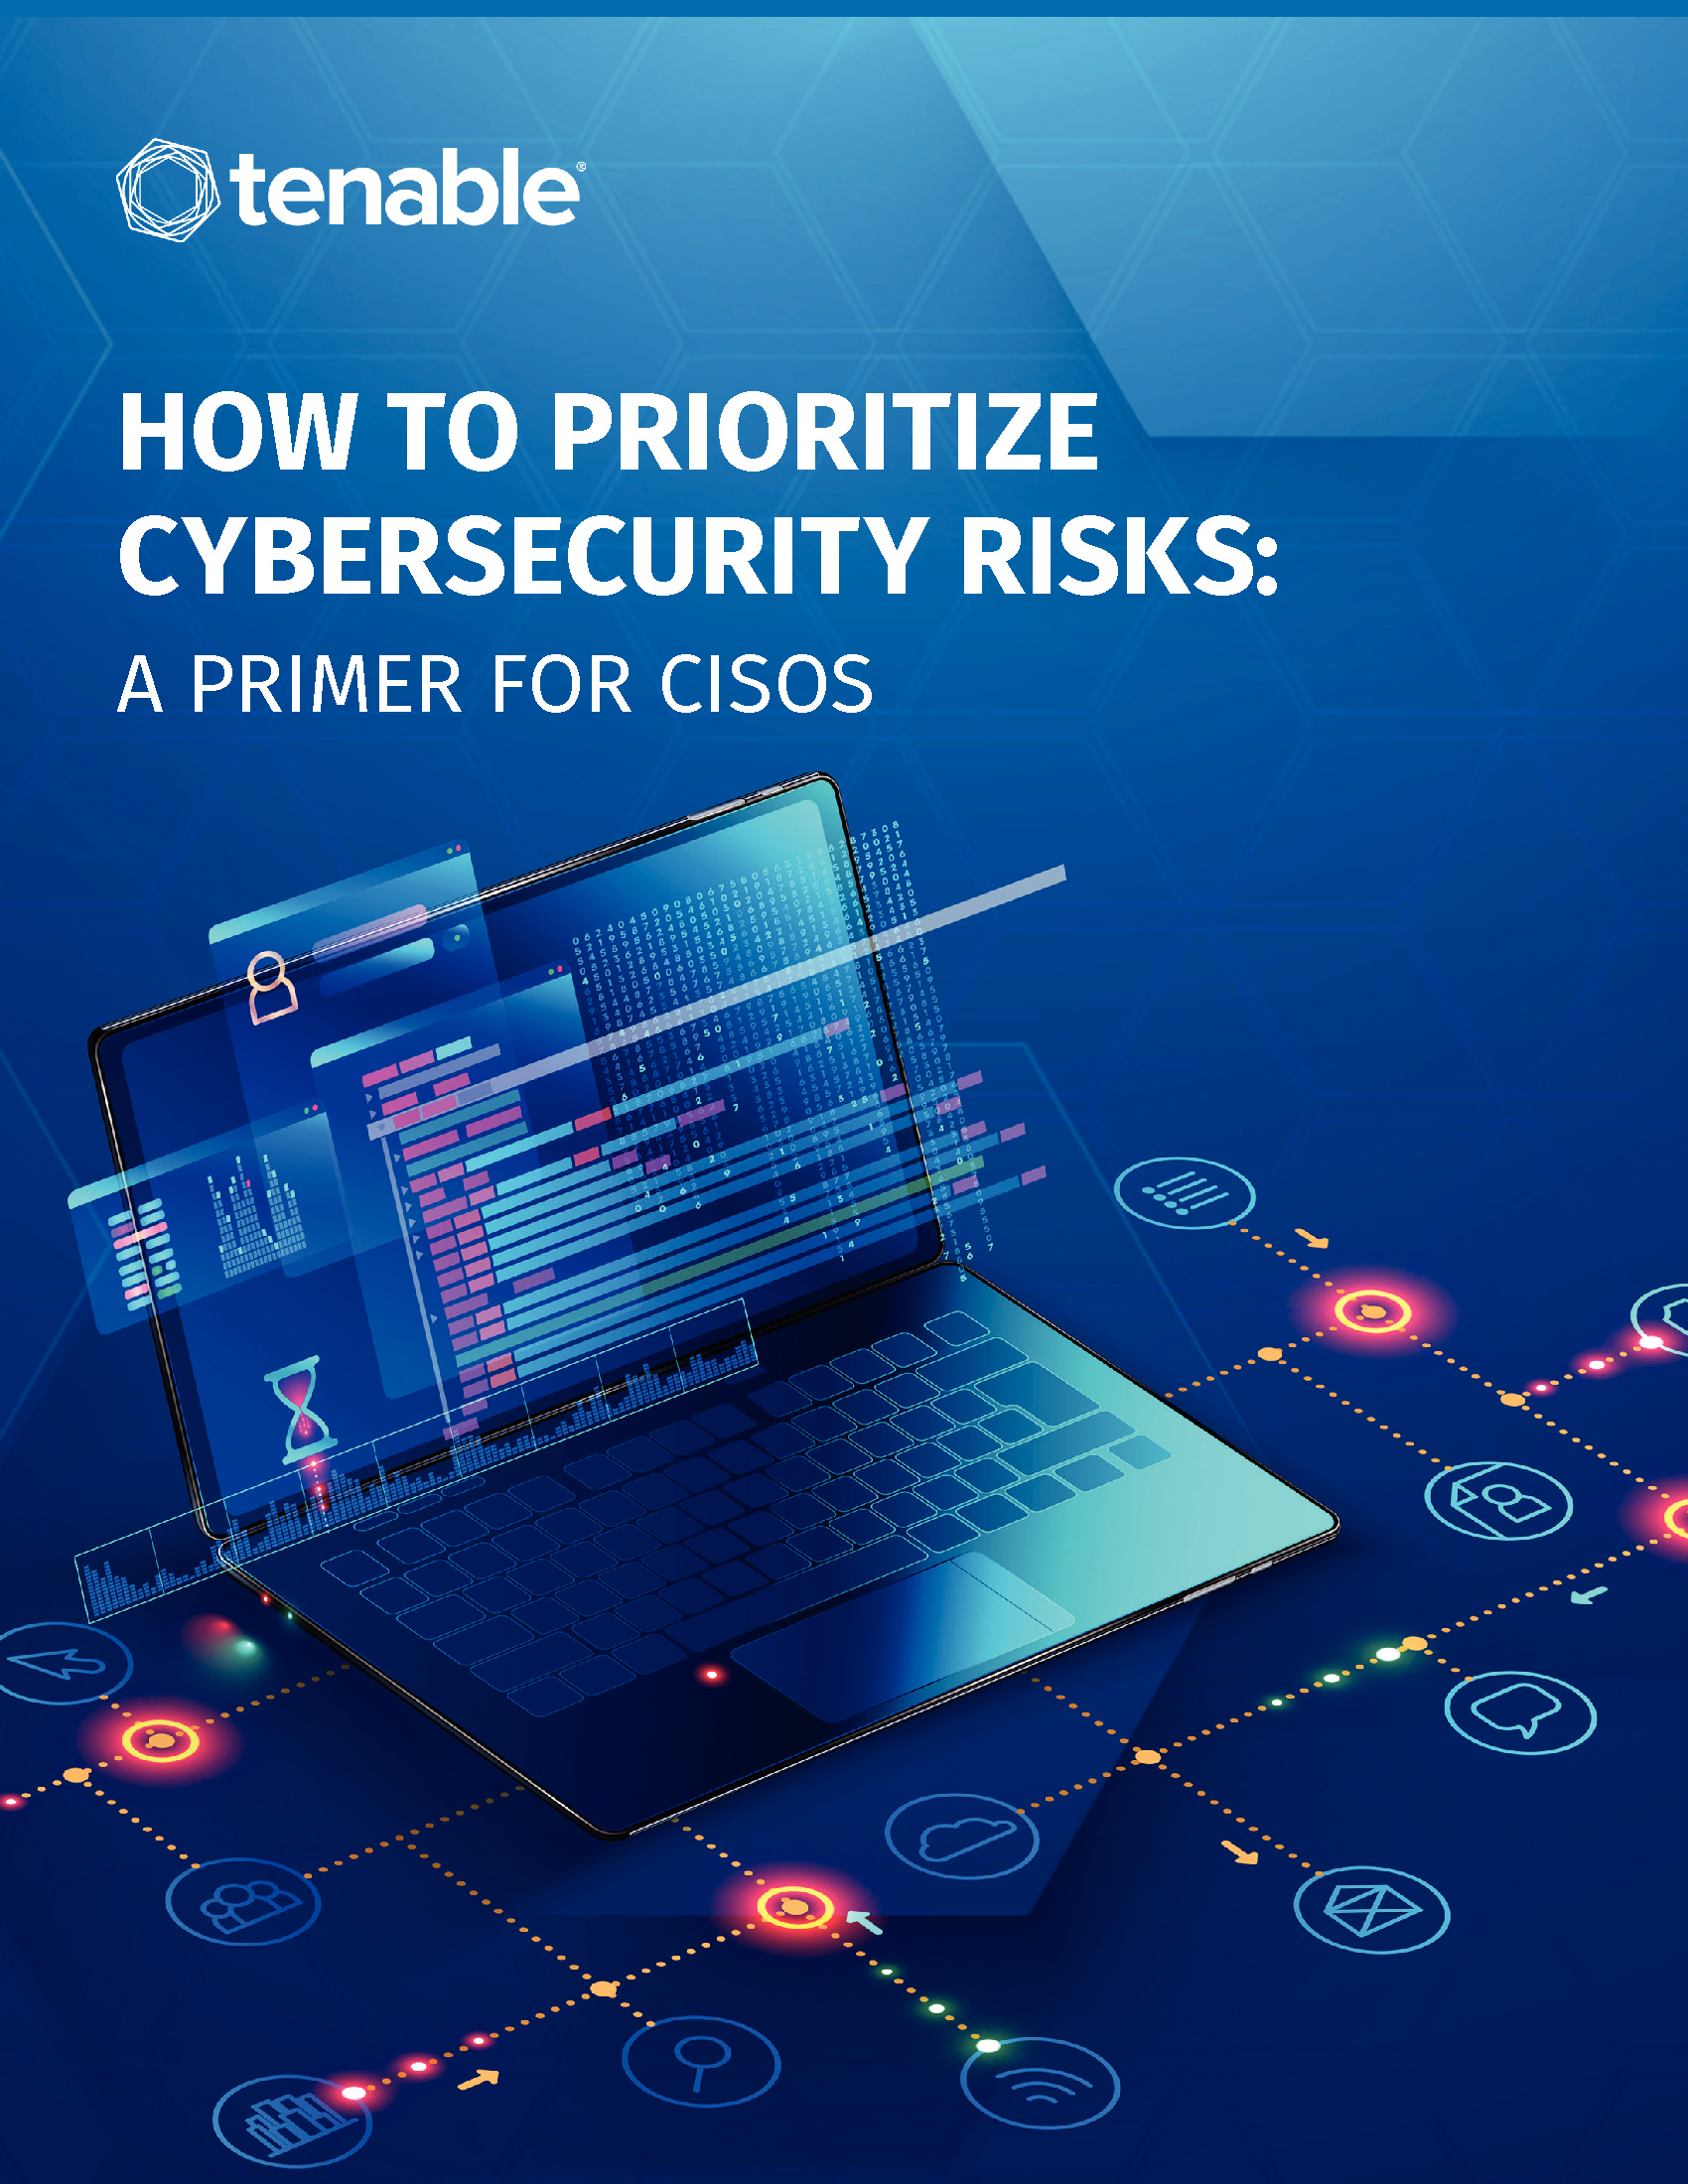 How To Prioritize Cybersecurity Risk: A Primer for CISOs